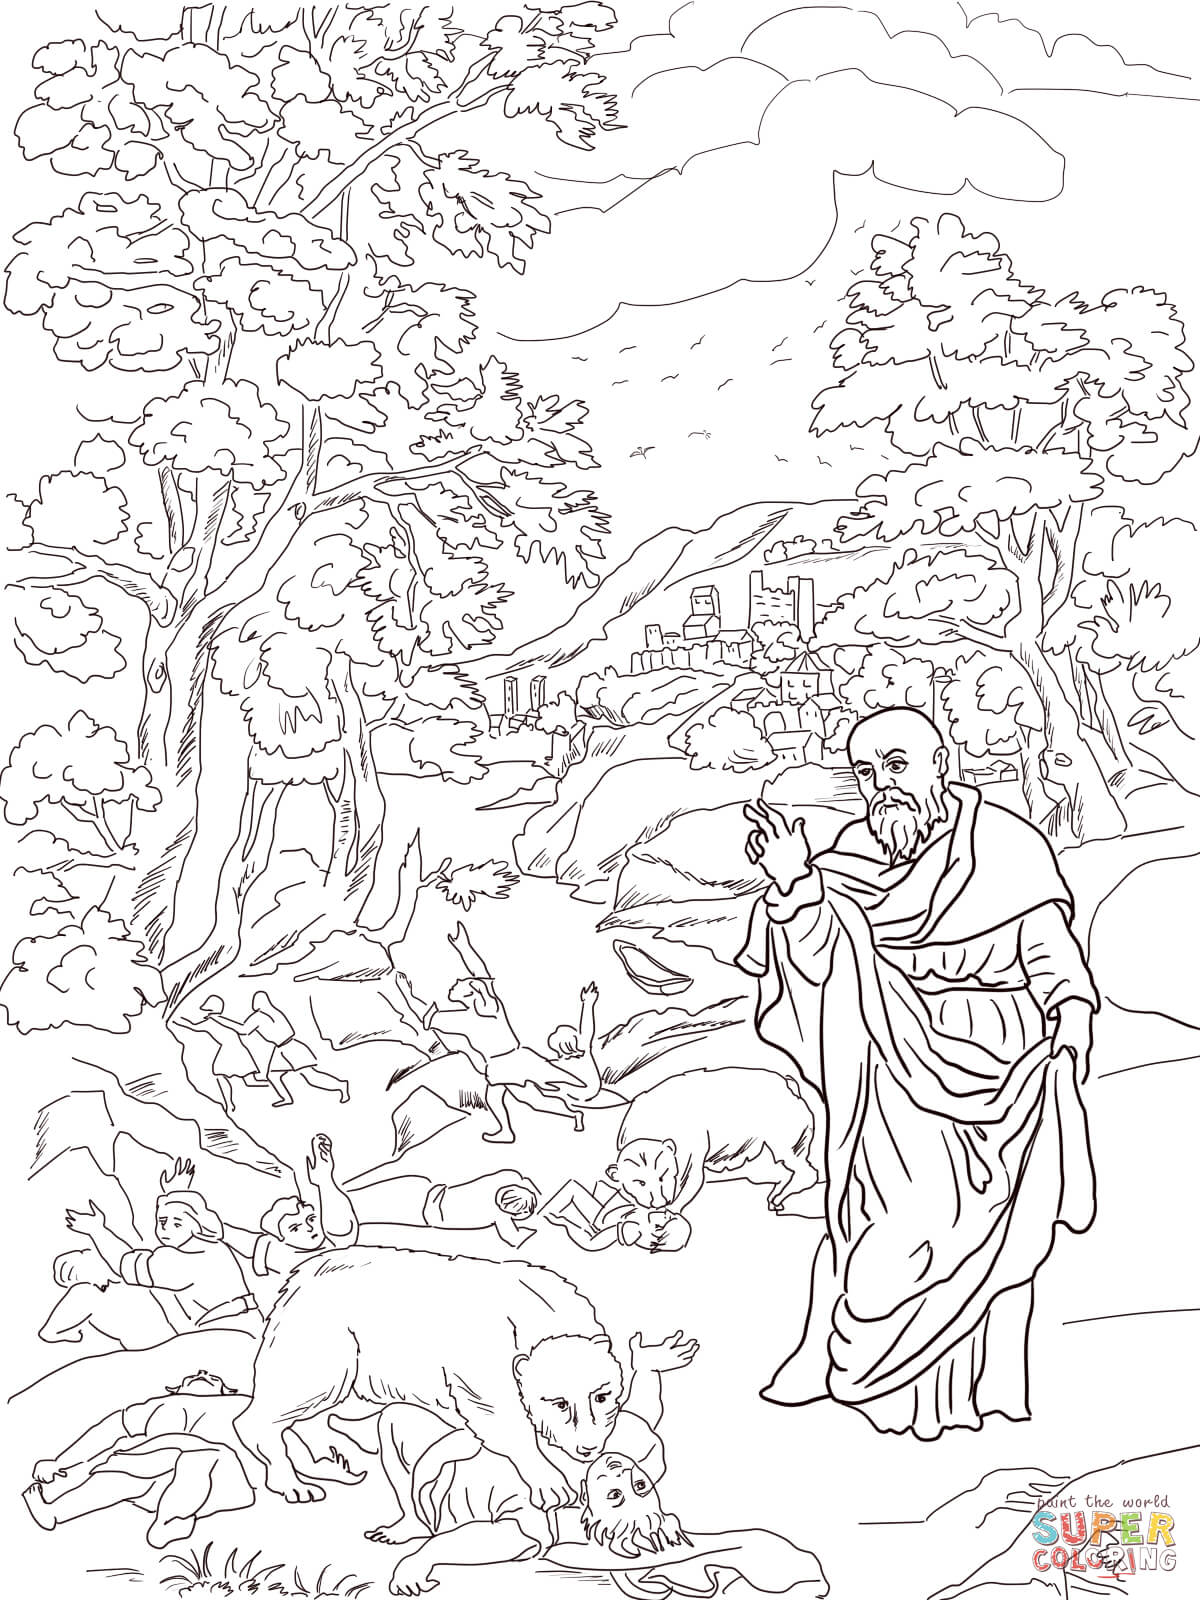 Uncategorized Elisha Coloring Page elisha and the bears coloring page free printable pages pages